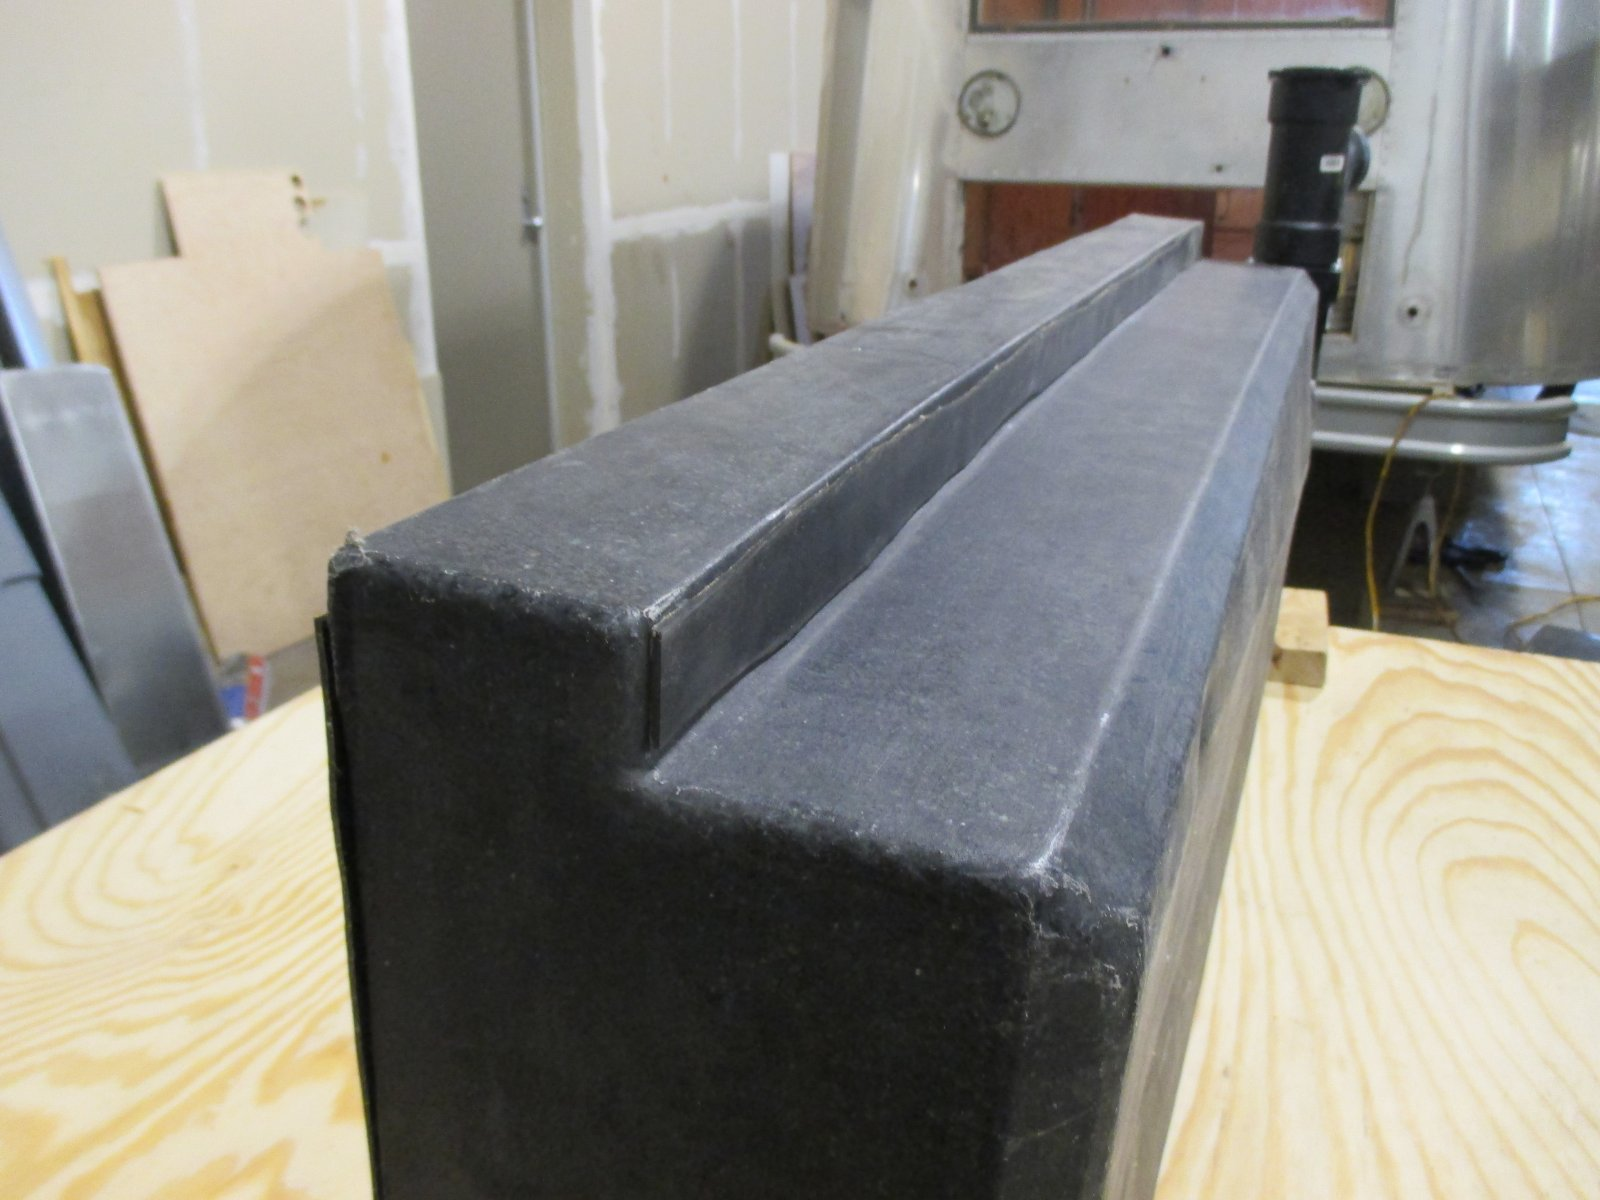 Click image for larger version  Name:1404 Waste Tanks Rubber Mounting Rail Interface.jpg Views:91 Size:193.3 KB ID:243645